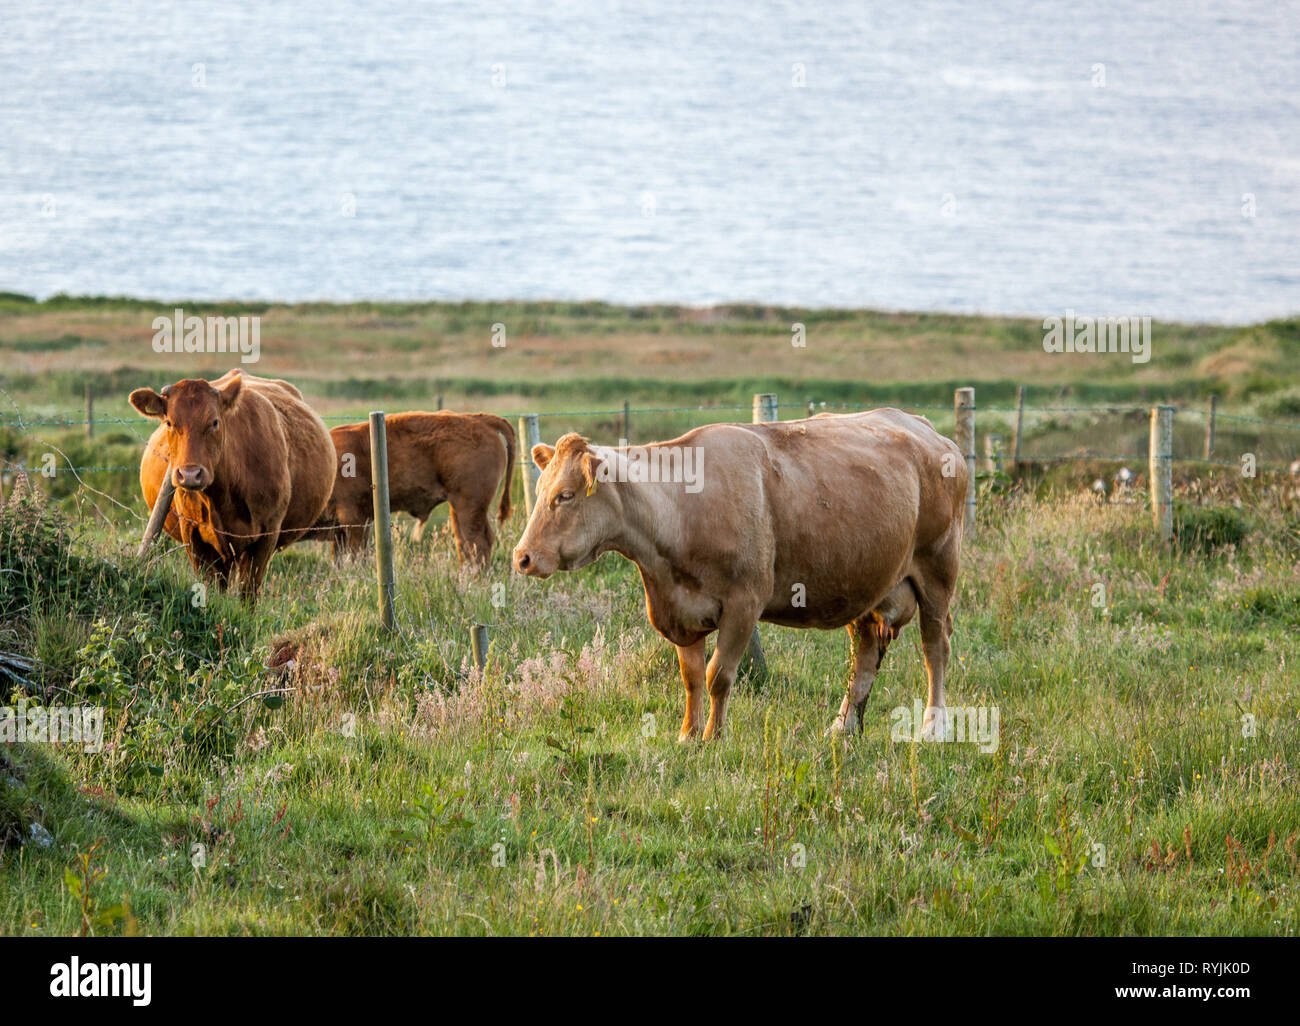 Dursey Island, Cork, Ireland. 18th June, 2016  Cattle on a pasture  in the townland of Kilmichael on Dursey Island, Co. Cork, Ireland. - Stock Image